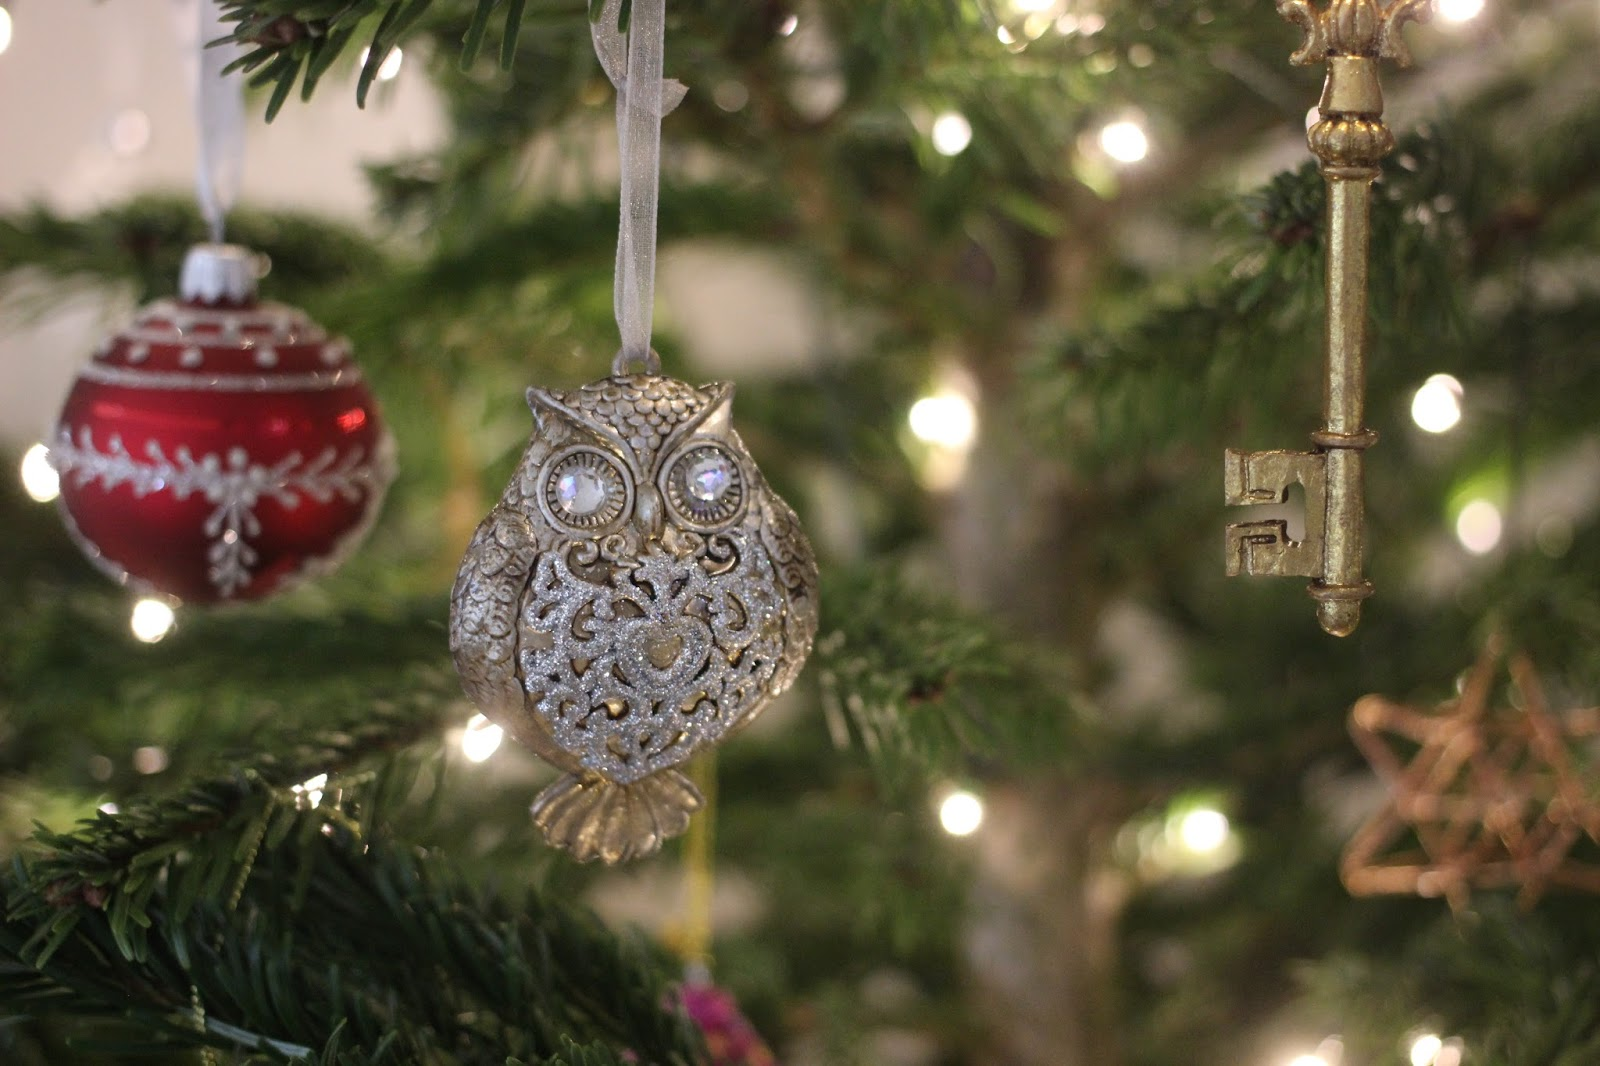 Owls, Keyu0027s, Santa Claus And Even Dachshunds Are Amongst The Decorations  Which I Purchased From John Lewis This Year. Christmas Tree Decorations  That Have A ...